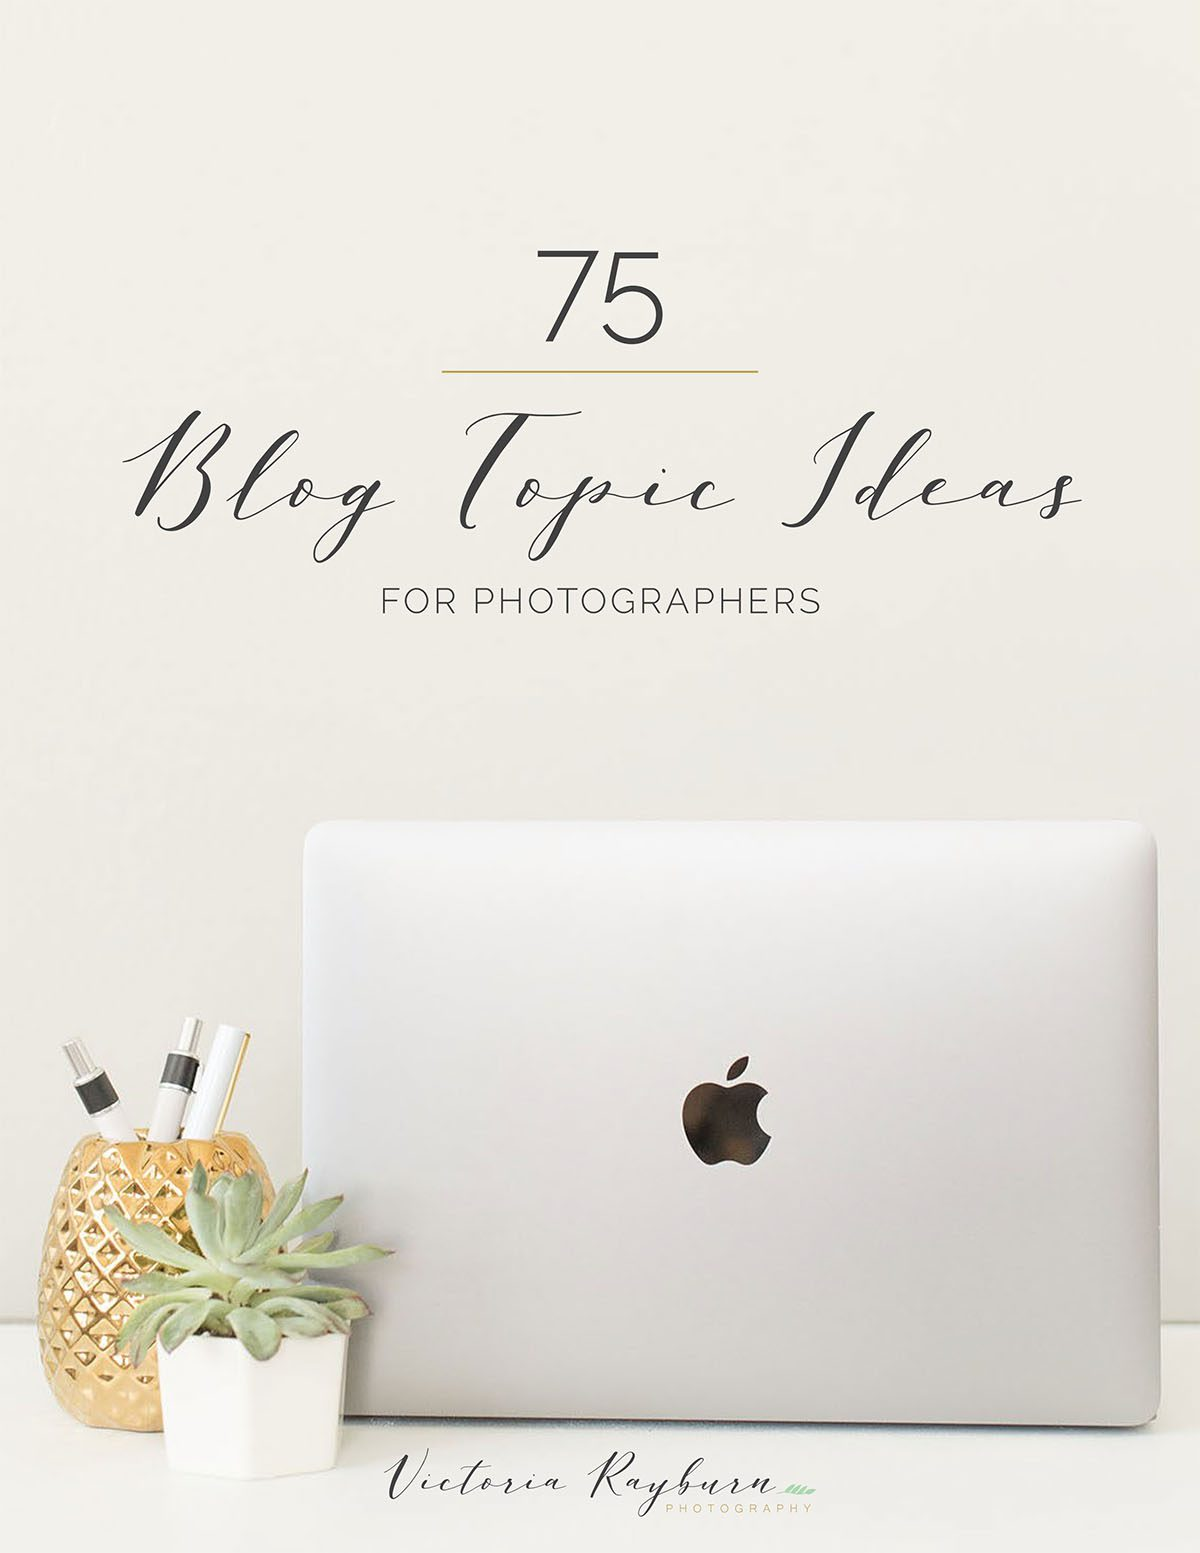 For Photographers and Entrepreneurs